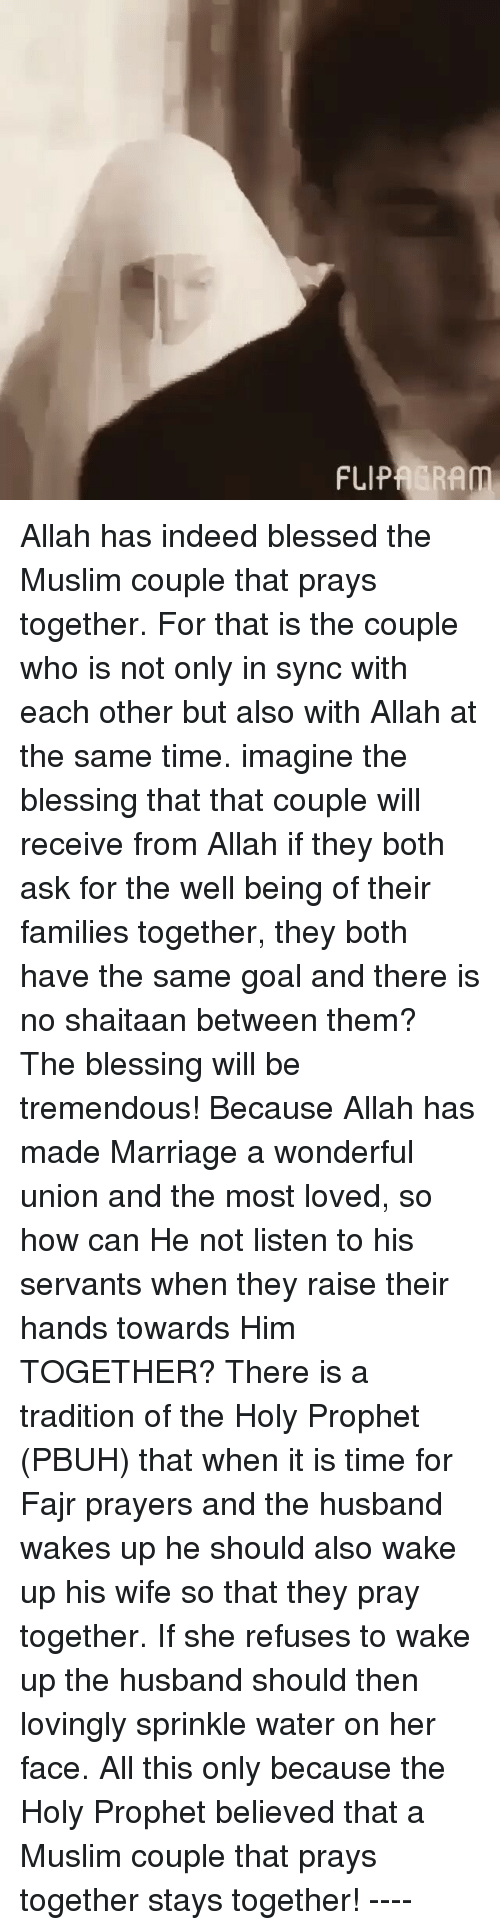 Memes, 🤖, and Ram: FLIP RAm Allah has indeed blessed the Muslim couple that prays together. For that is the couple who is not only in sync with each other but also with Allah at the same time. imagine the blessing that that couple will receive from Allah if they both ask for the well being of their families together, they both have the same goal and there is no shaitaan between them? The blessing will be tremendous! Because Allah has made Marriage a wonderful union and the most loved, so how can He not listen to his servants when they raise their hands towards Him TOGETHER? There is a tradition of the Holy Prophet (PBUH) that when it is time for Fajr prayers and the husband wakes up he should also wake up his wife so that they pray together. If she refuses to wake up the husband should then lovingly sprinkle water on her face. All this only because the Holy Prophet believed that a Muslim couple that prays together stays together! ----